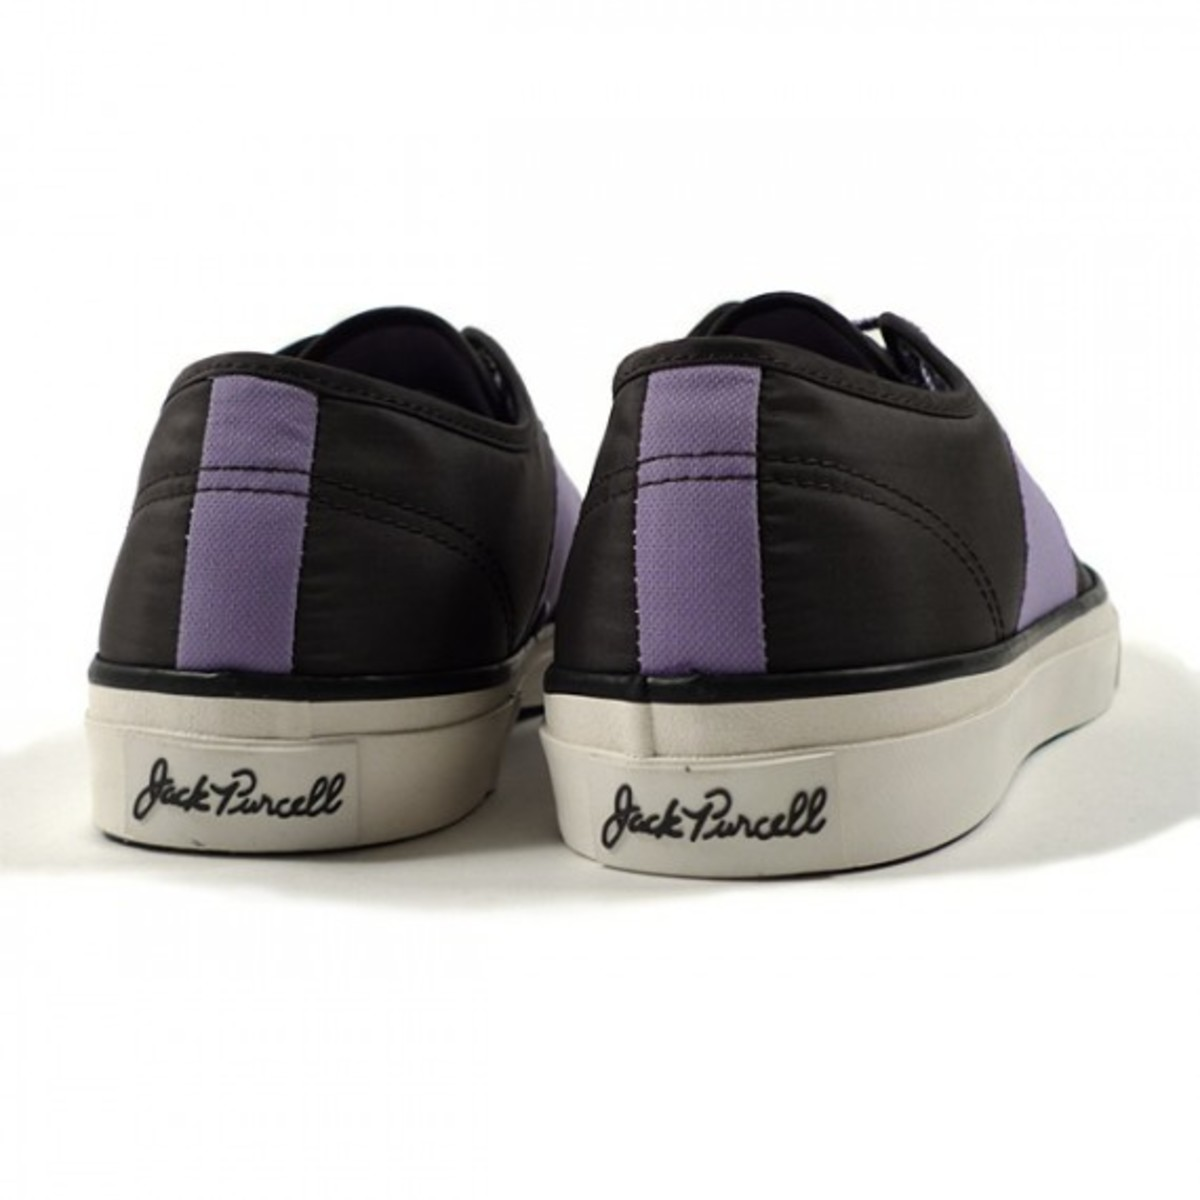 converse-first-string-jack-purcell-johnny-10